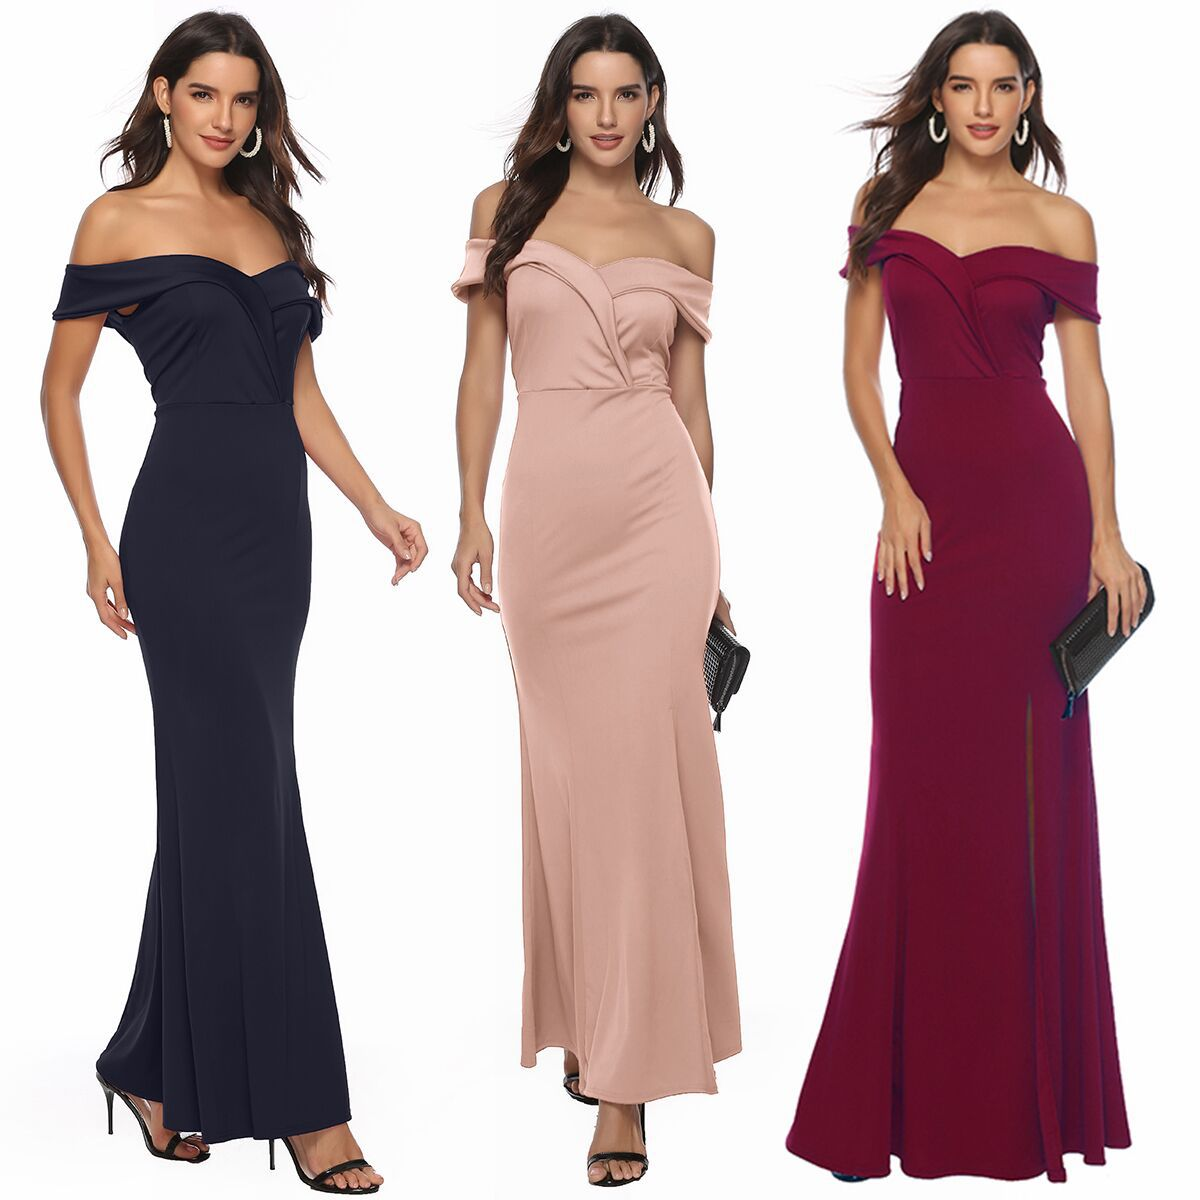 sexy Sweetheart collar Evening Dresses women's evening dress Party Open fork Dress Prom mermaid evening Gown elegant prom dress